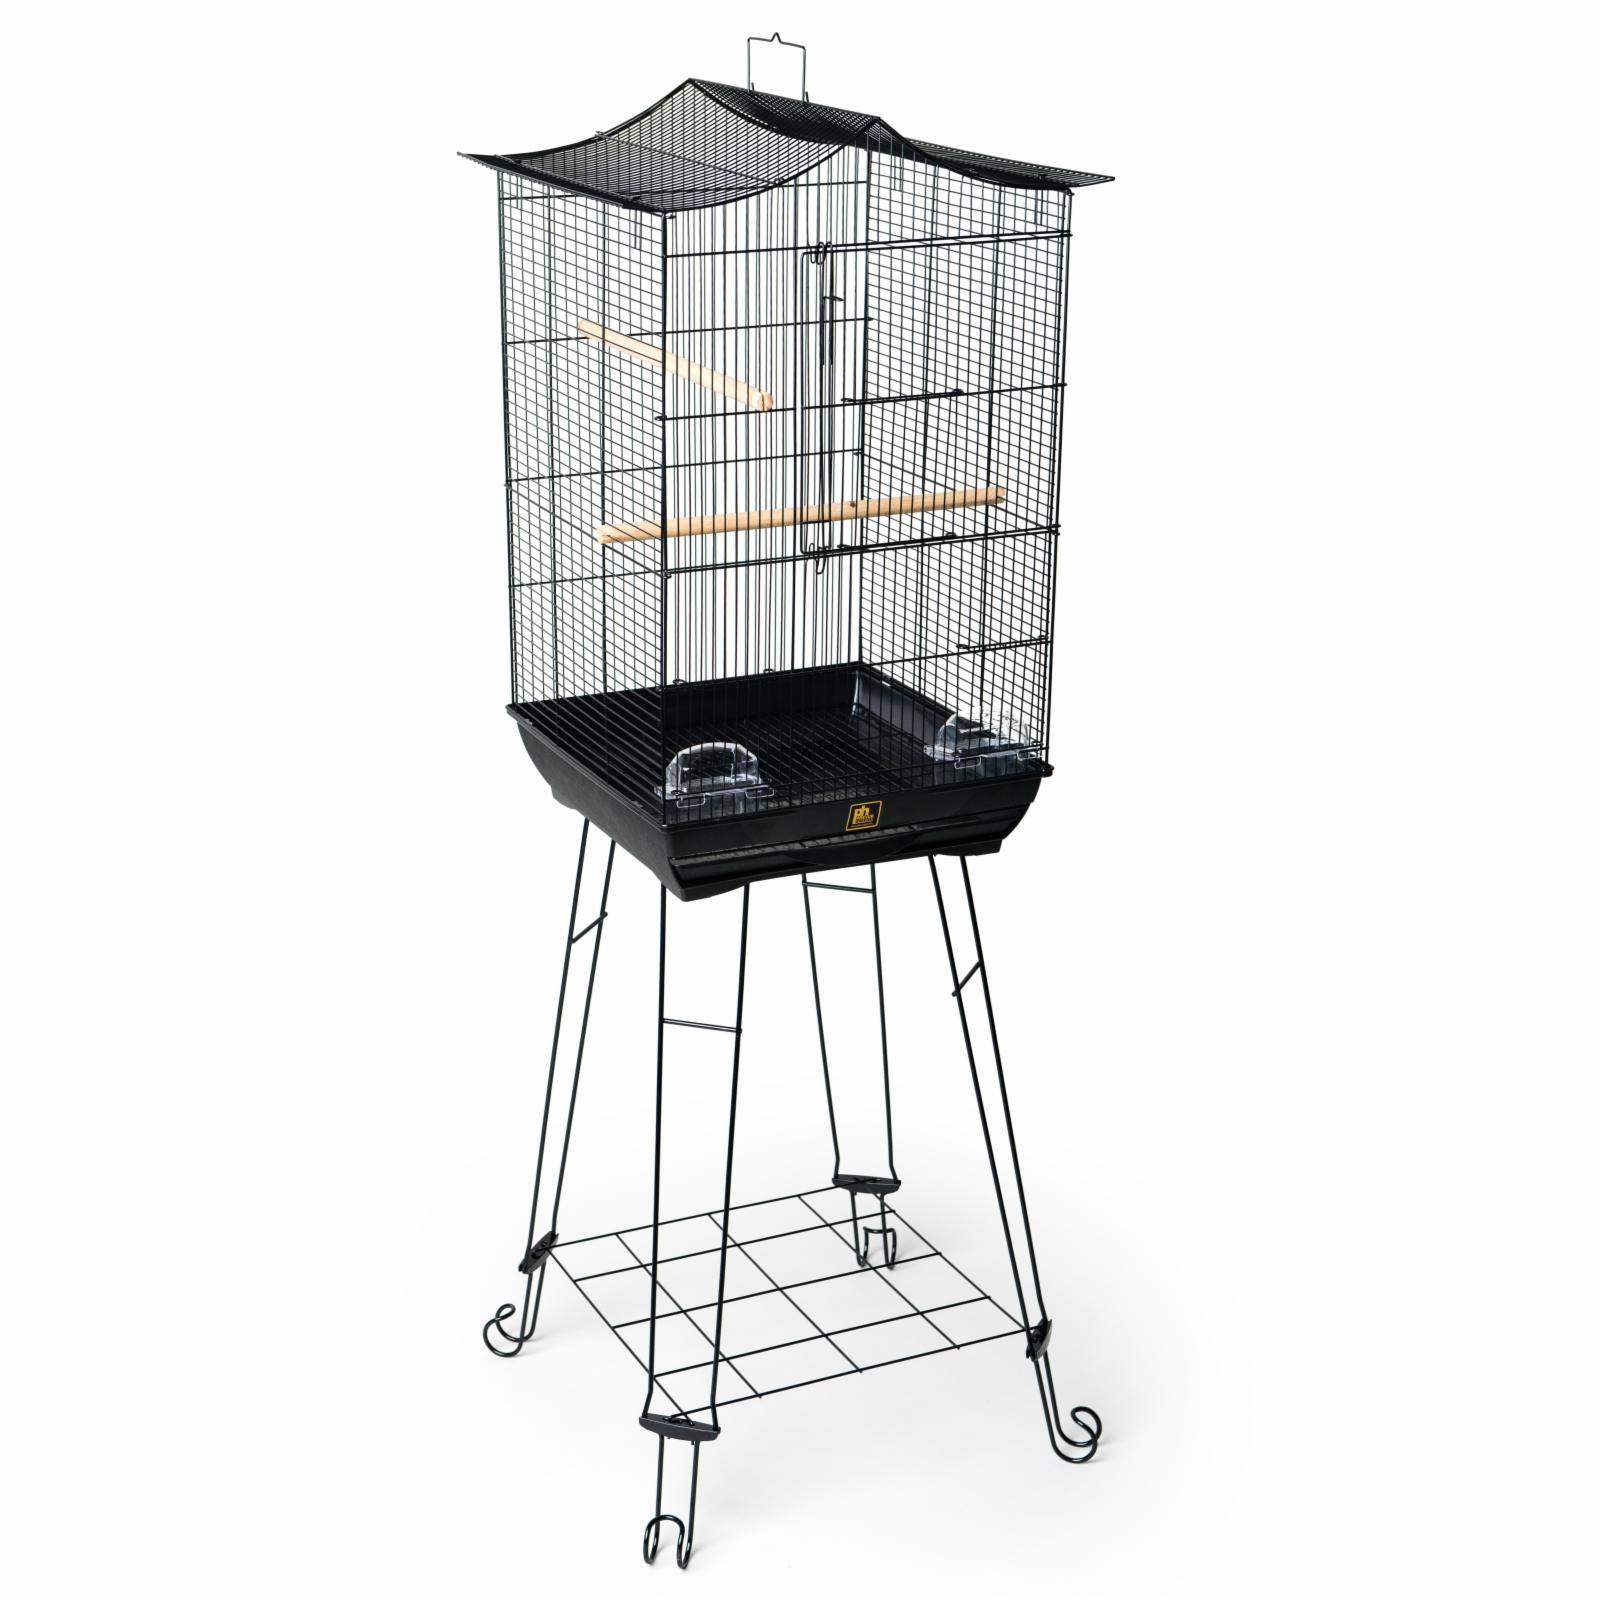 Prevue Pet Products Penthouse Suites Crown Roof Bird Cage with Black Stand - 262